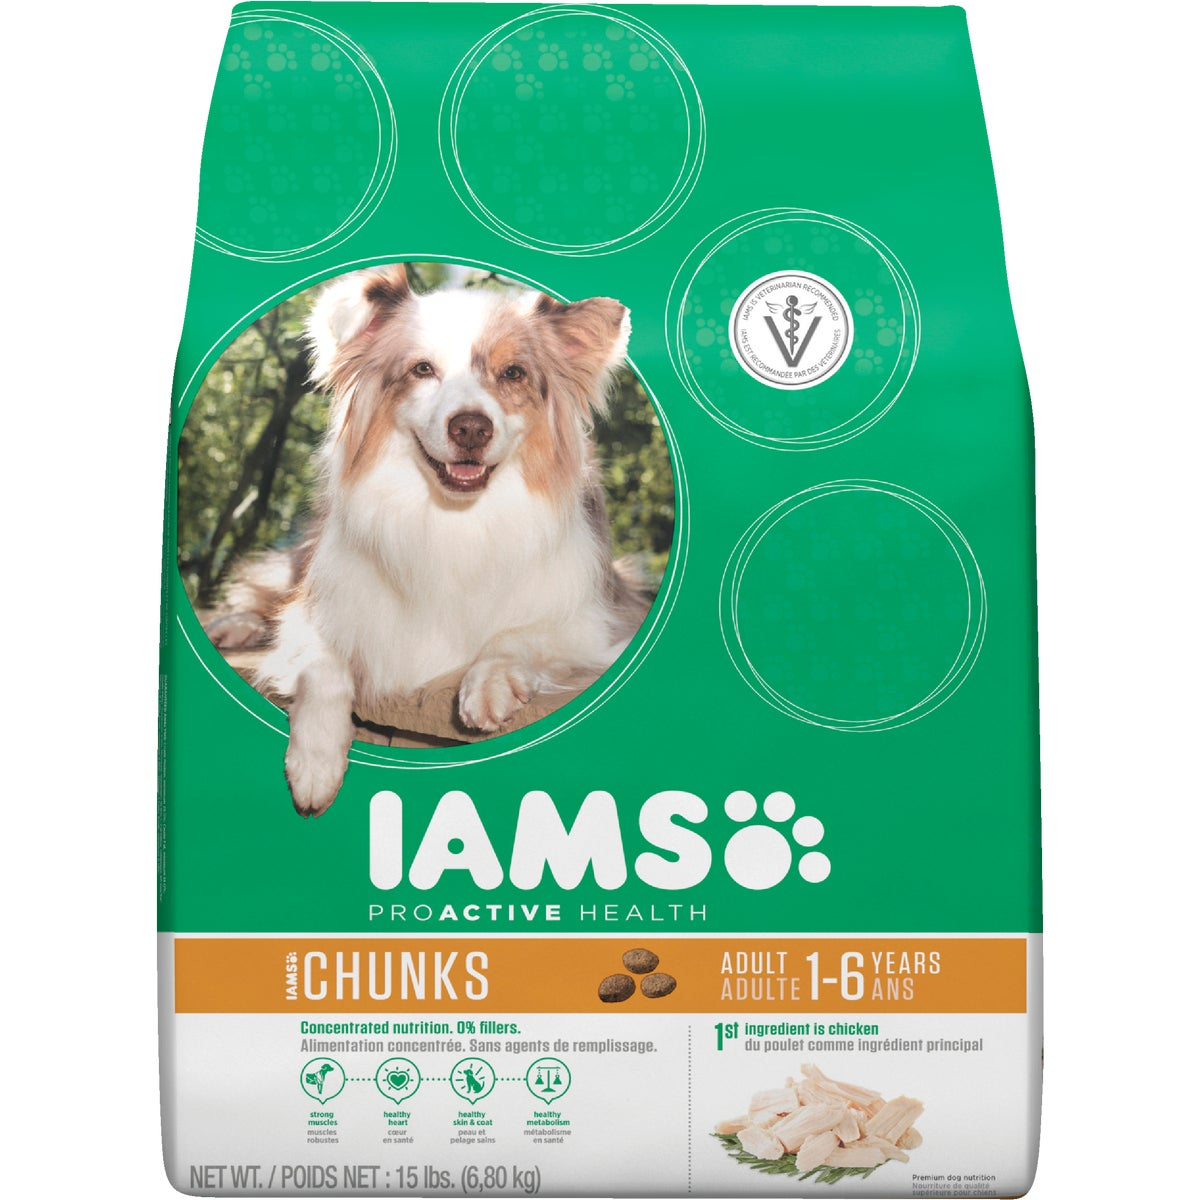 15LB CHUNK DOG FOOD - 10815 by Wolverton Iams